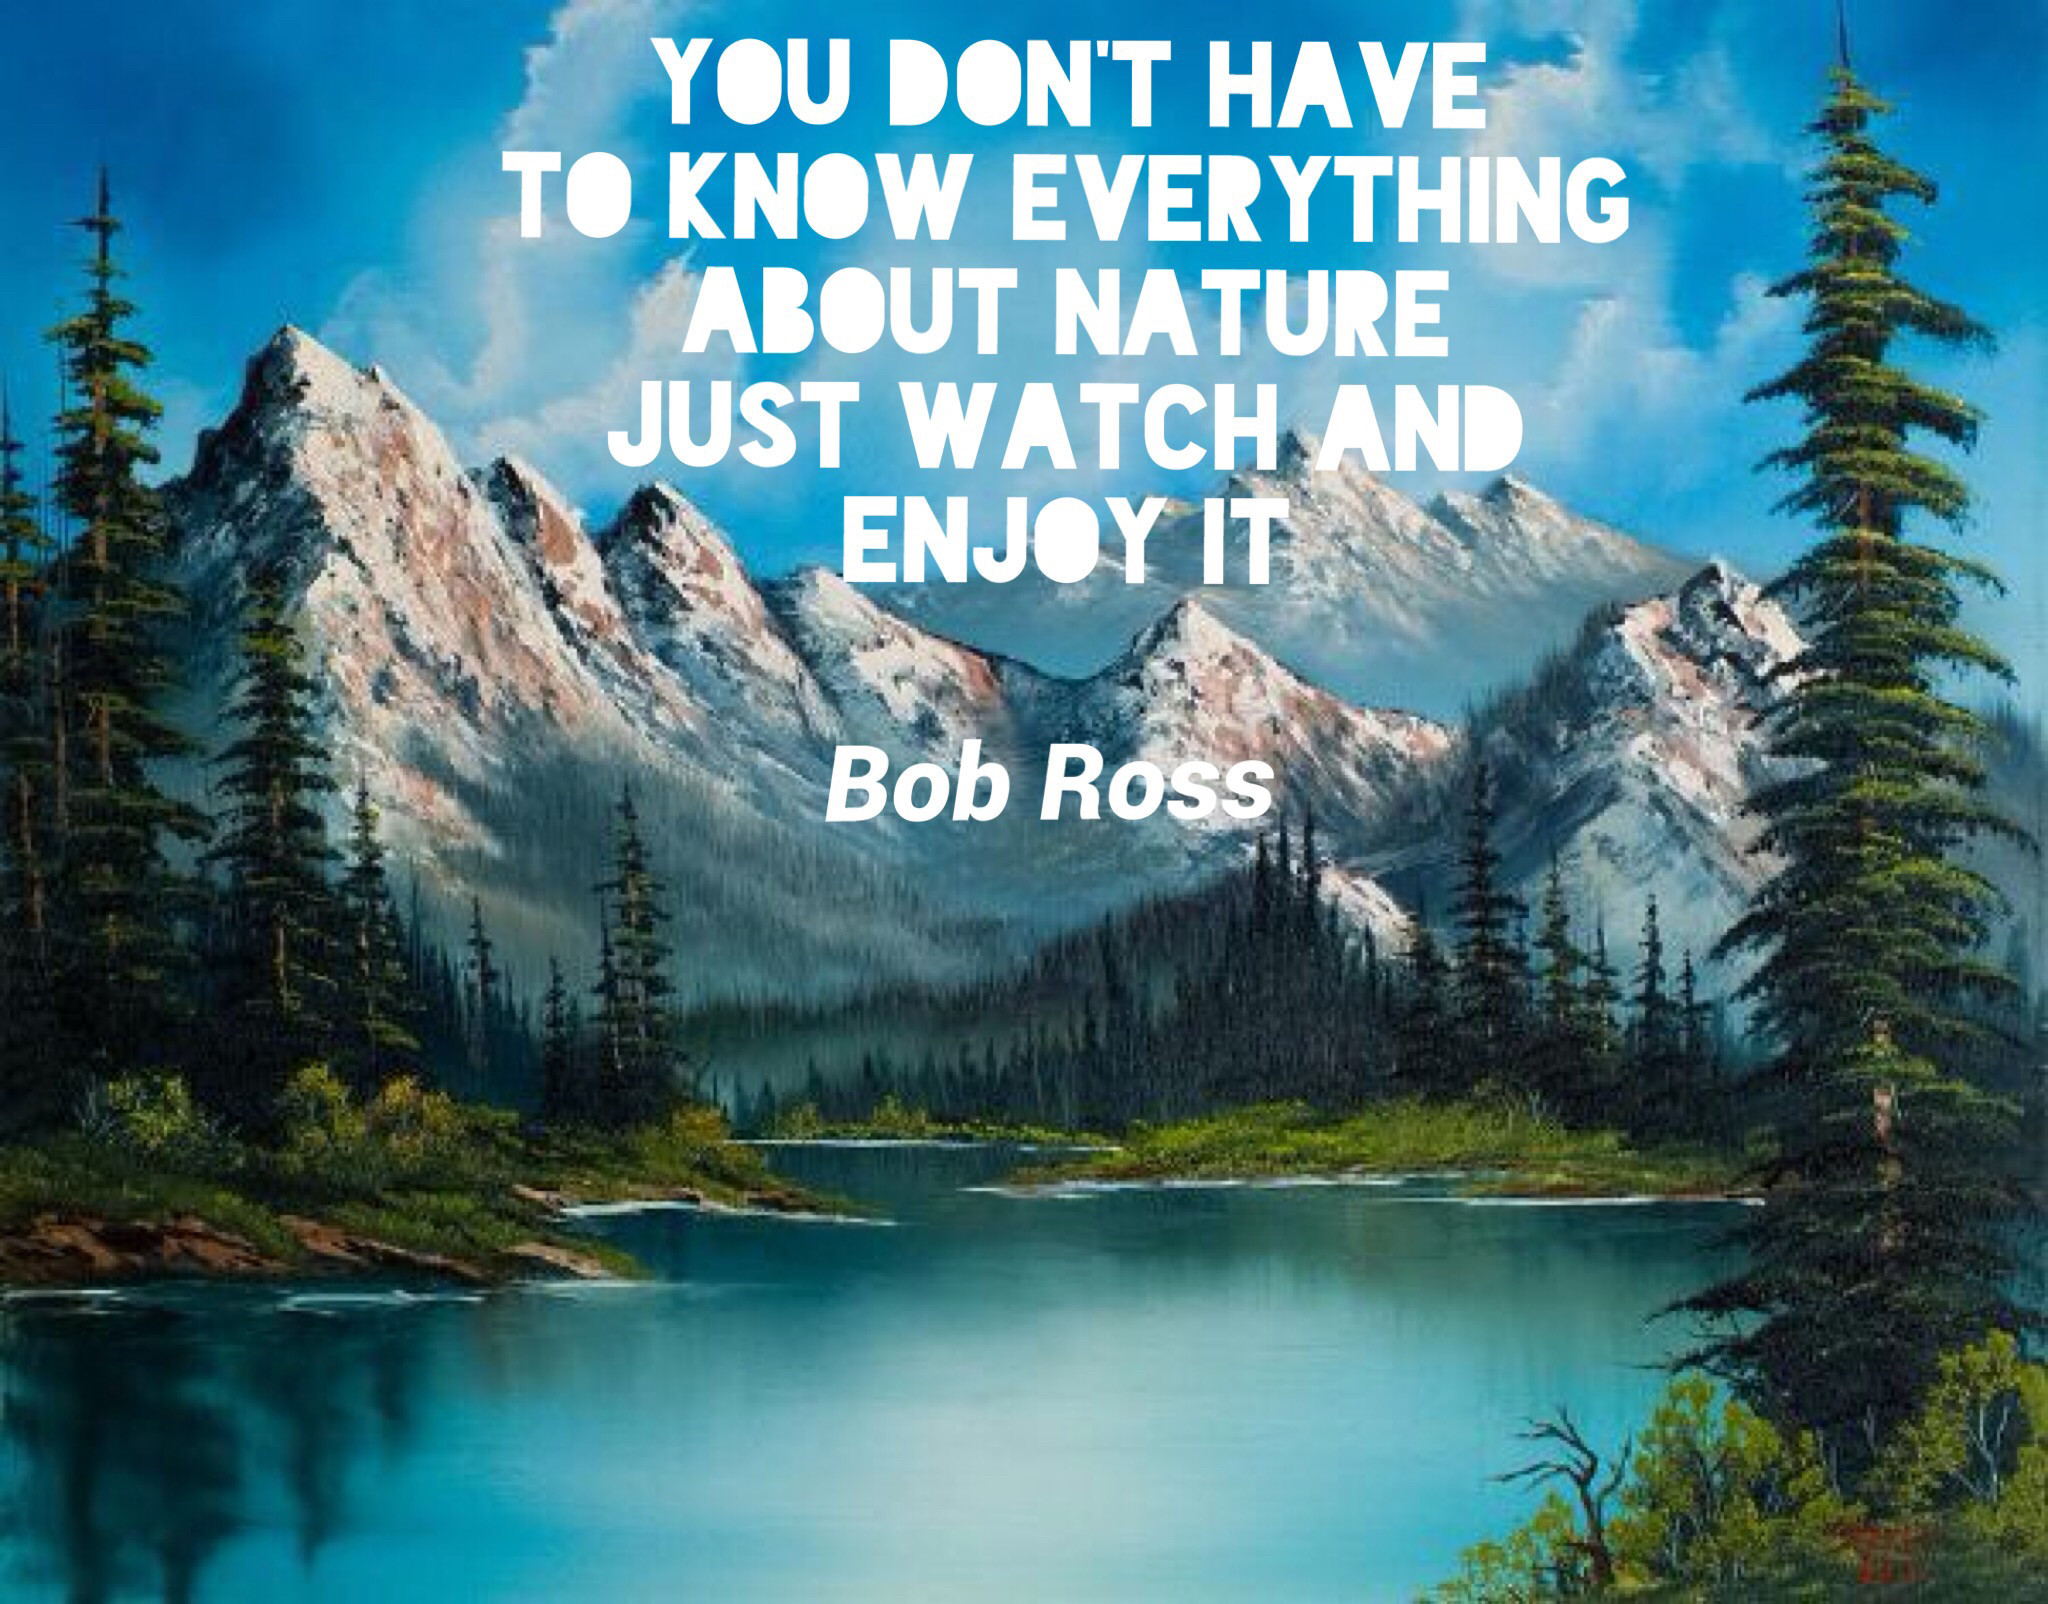 Res: 2048x1604, free-download-bob-ross-wallpapers--for-mobile-